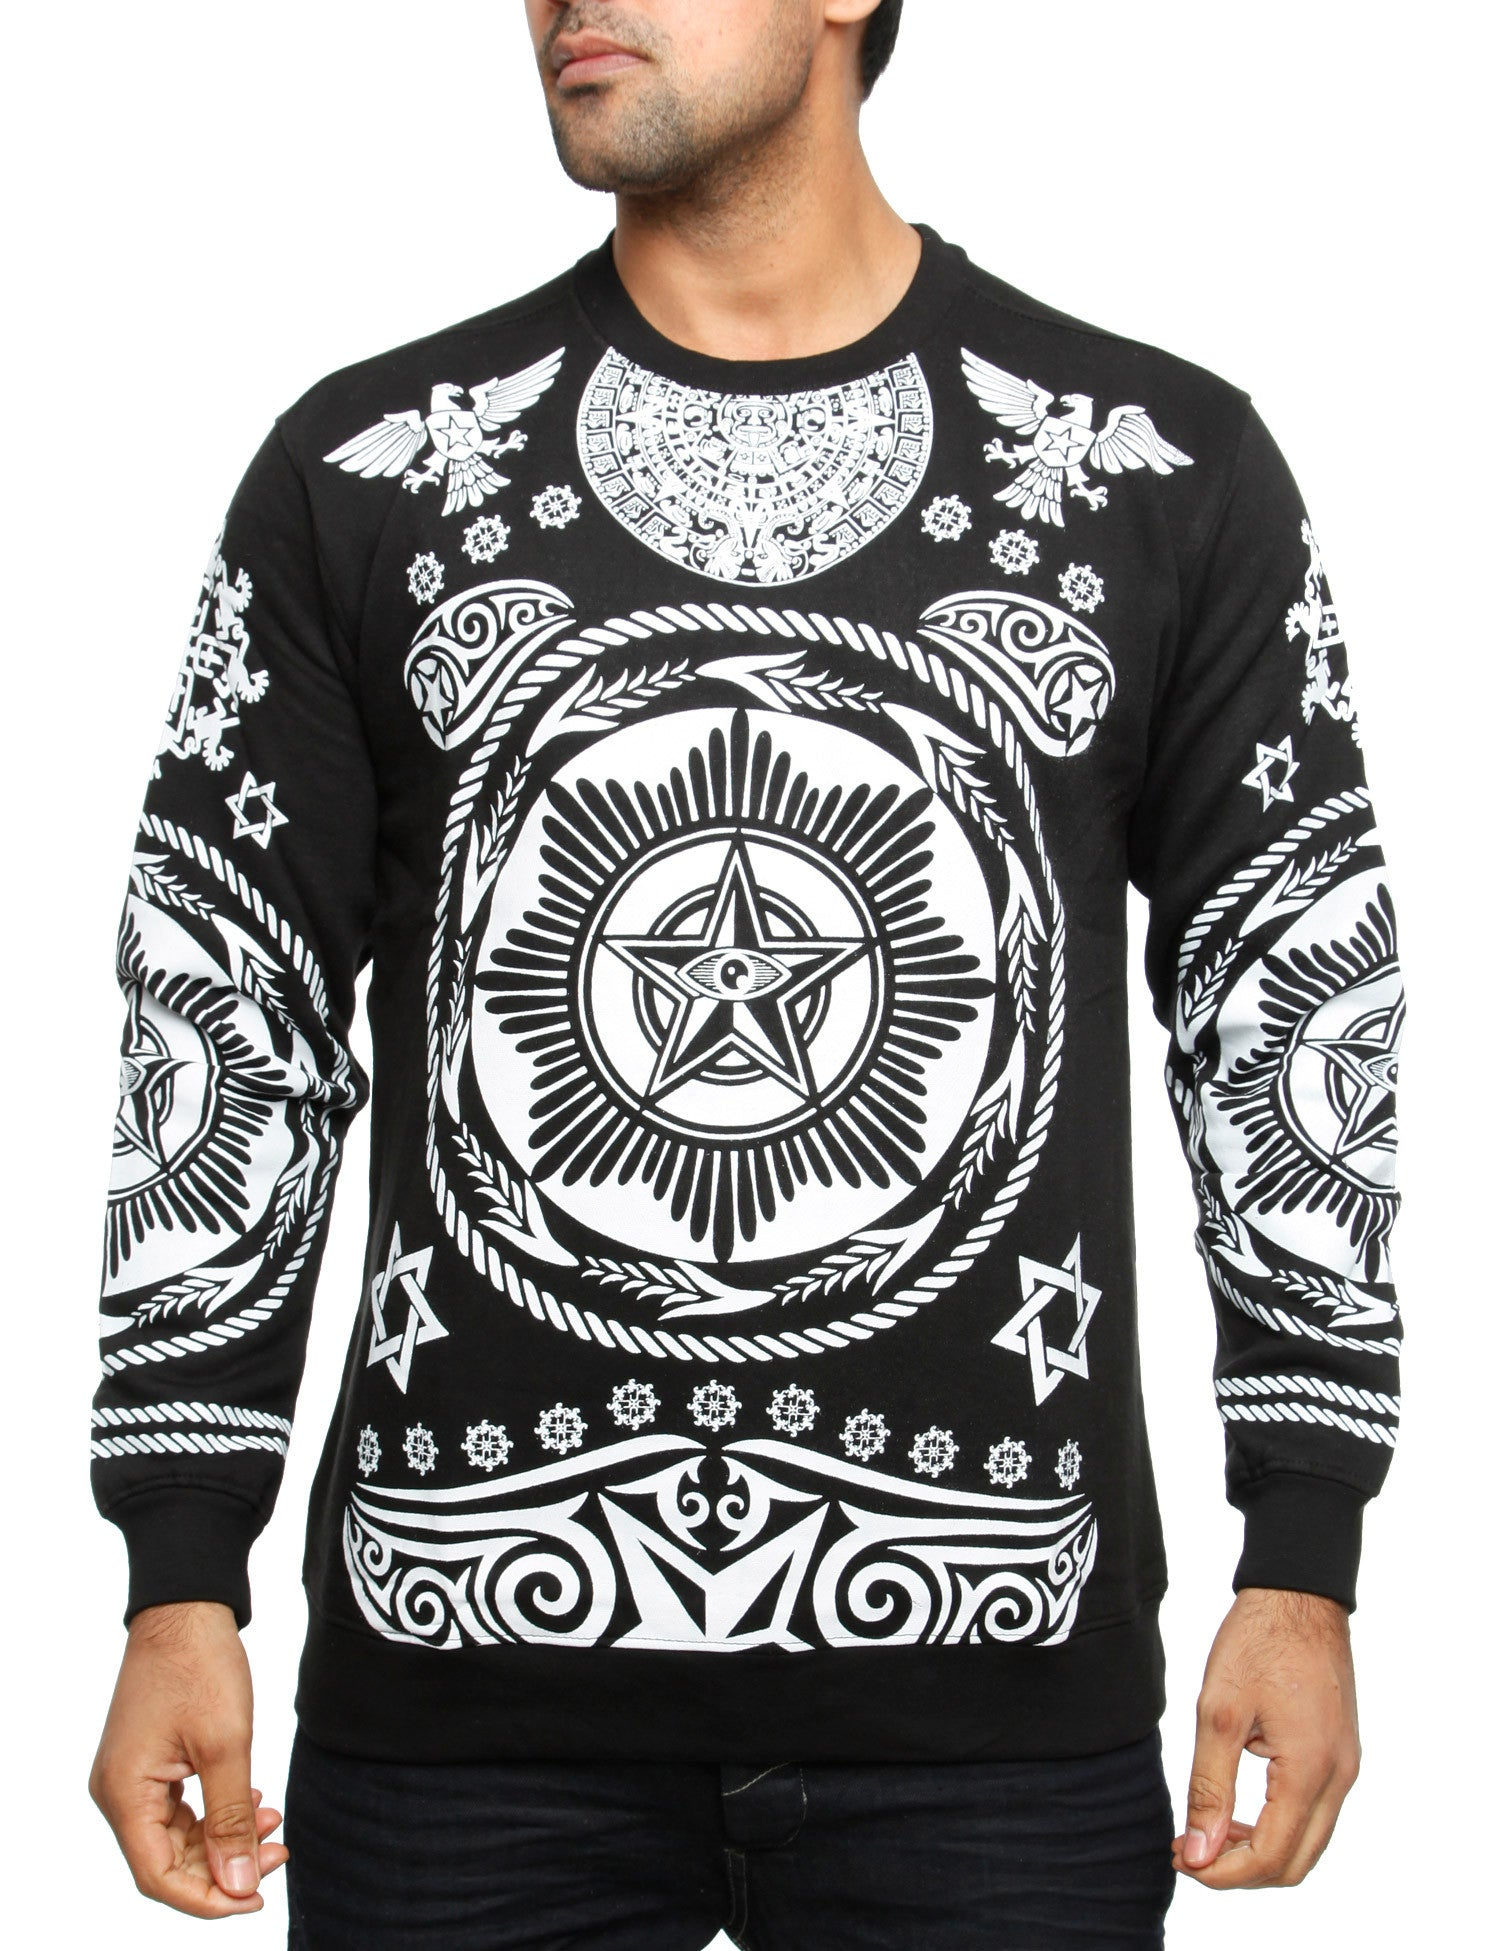 Imperious CS64 Hiero Crewneck Sweatshirt Black